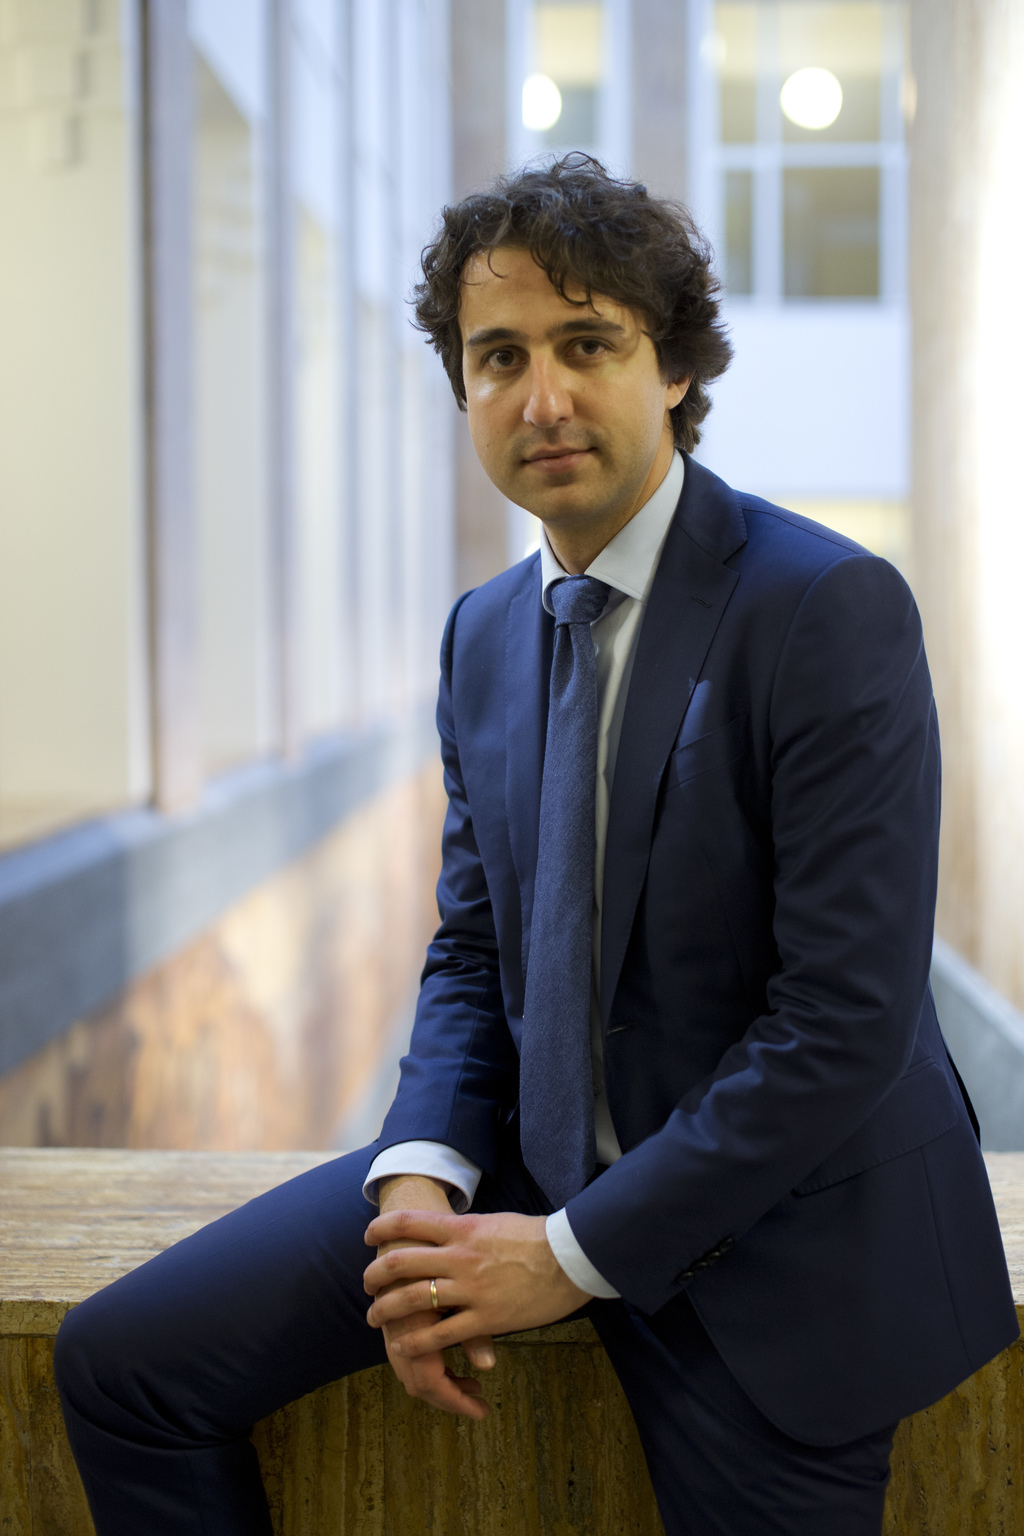 Green Left party leader Jesse Klaver poses for a portrait after an interview in The Hague, Netherlands, Wednesday, March 8, 2017. (AP P...